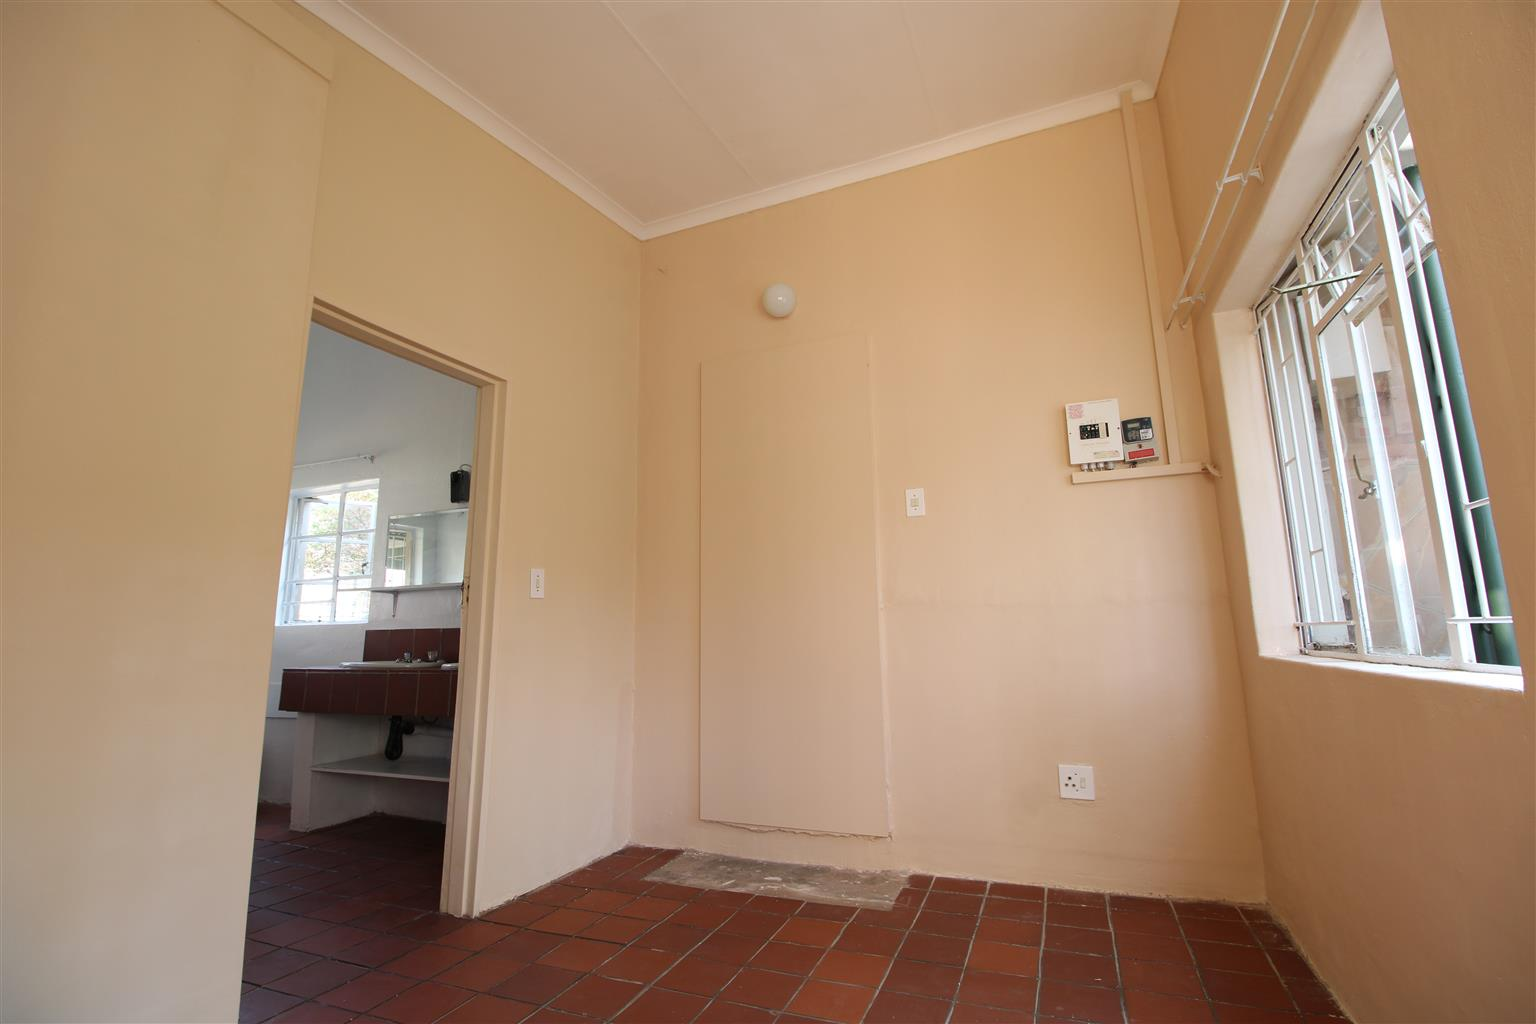 Investment Property with Rental Income - Multi-Tenant Property